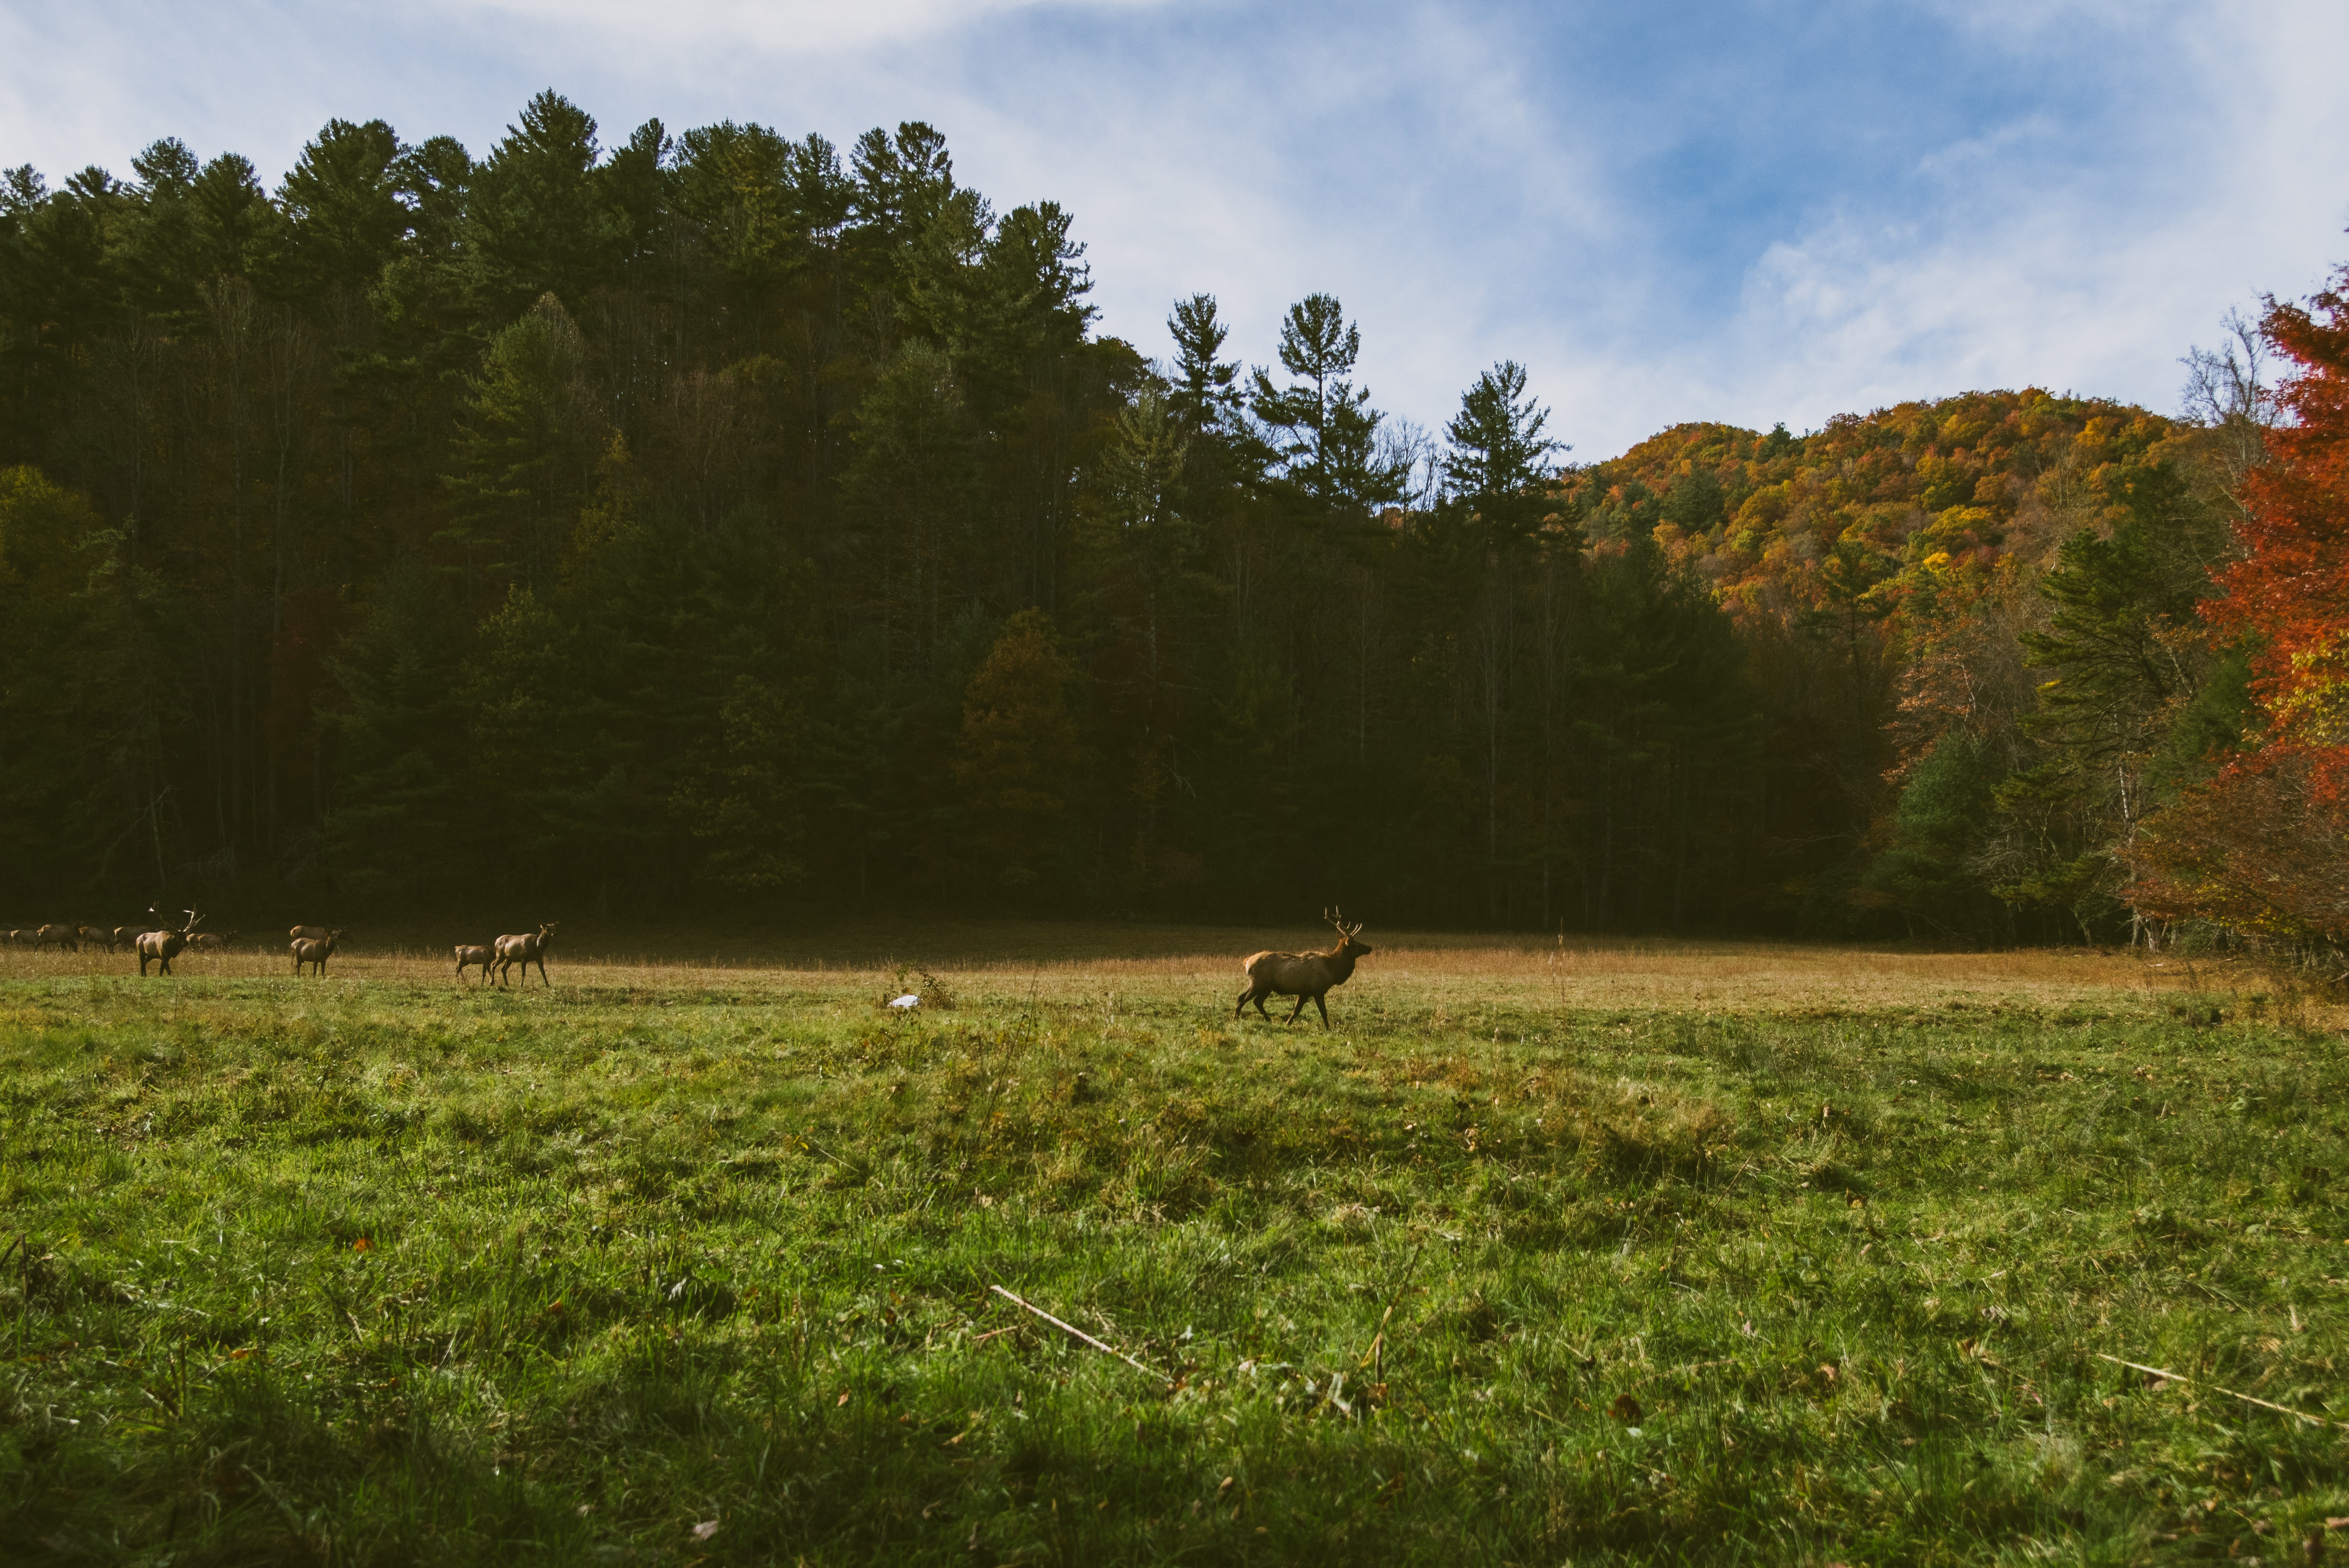 A herd of deers in a meadow near a forest in Cataloochee